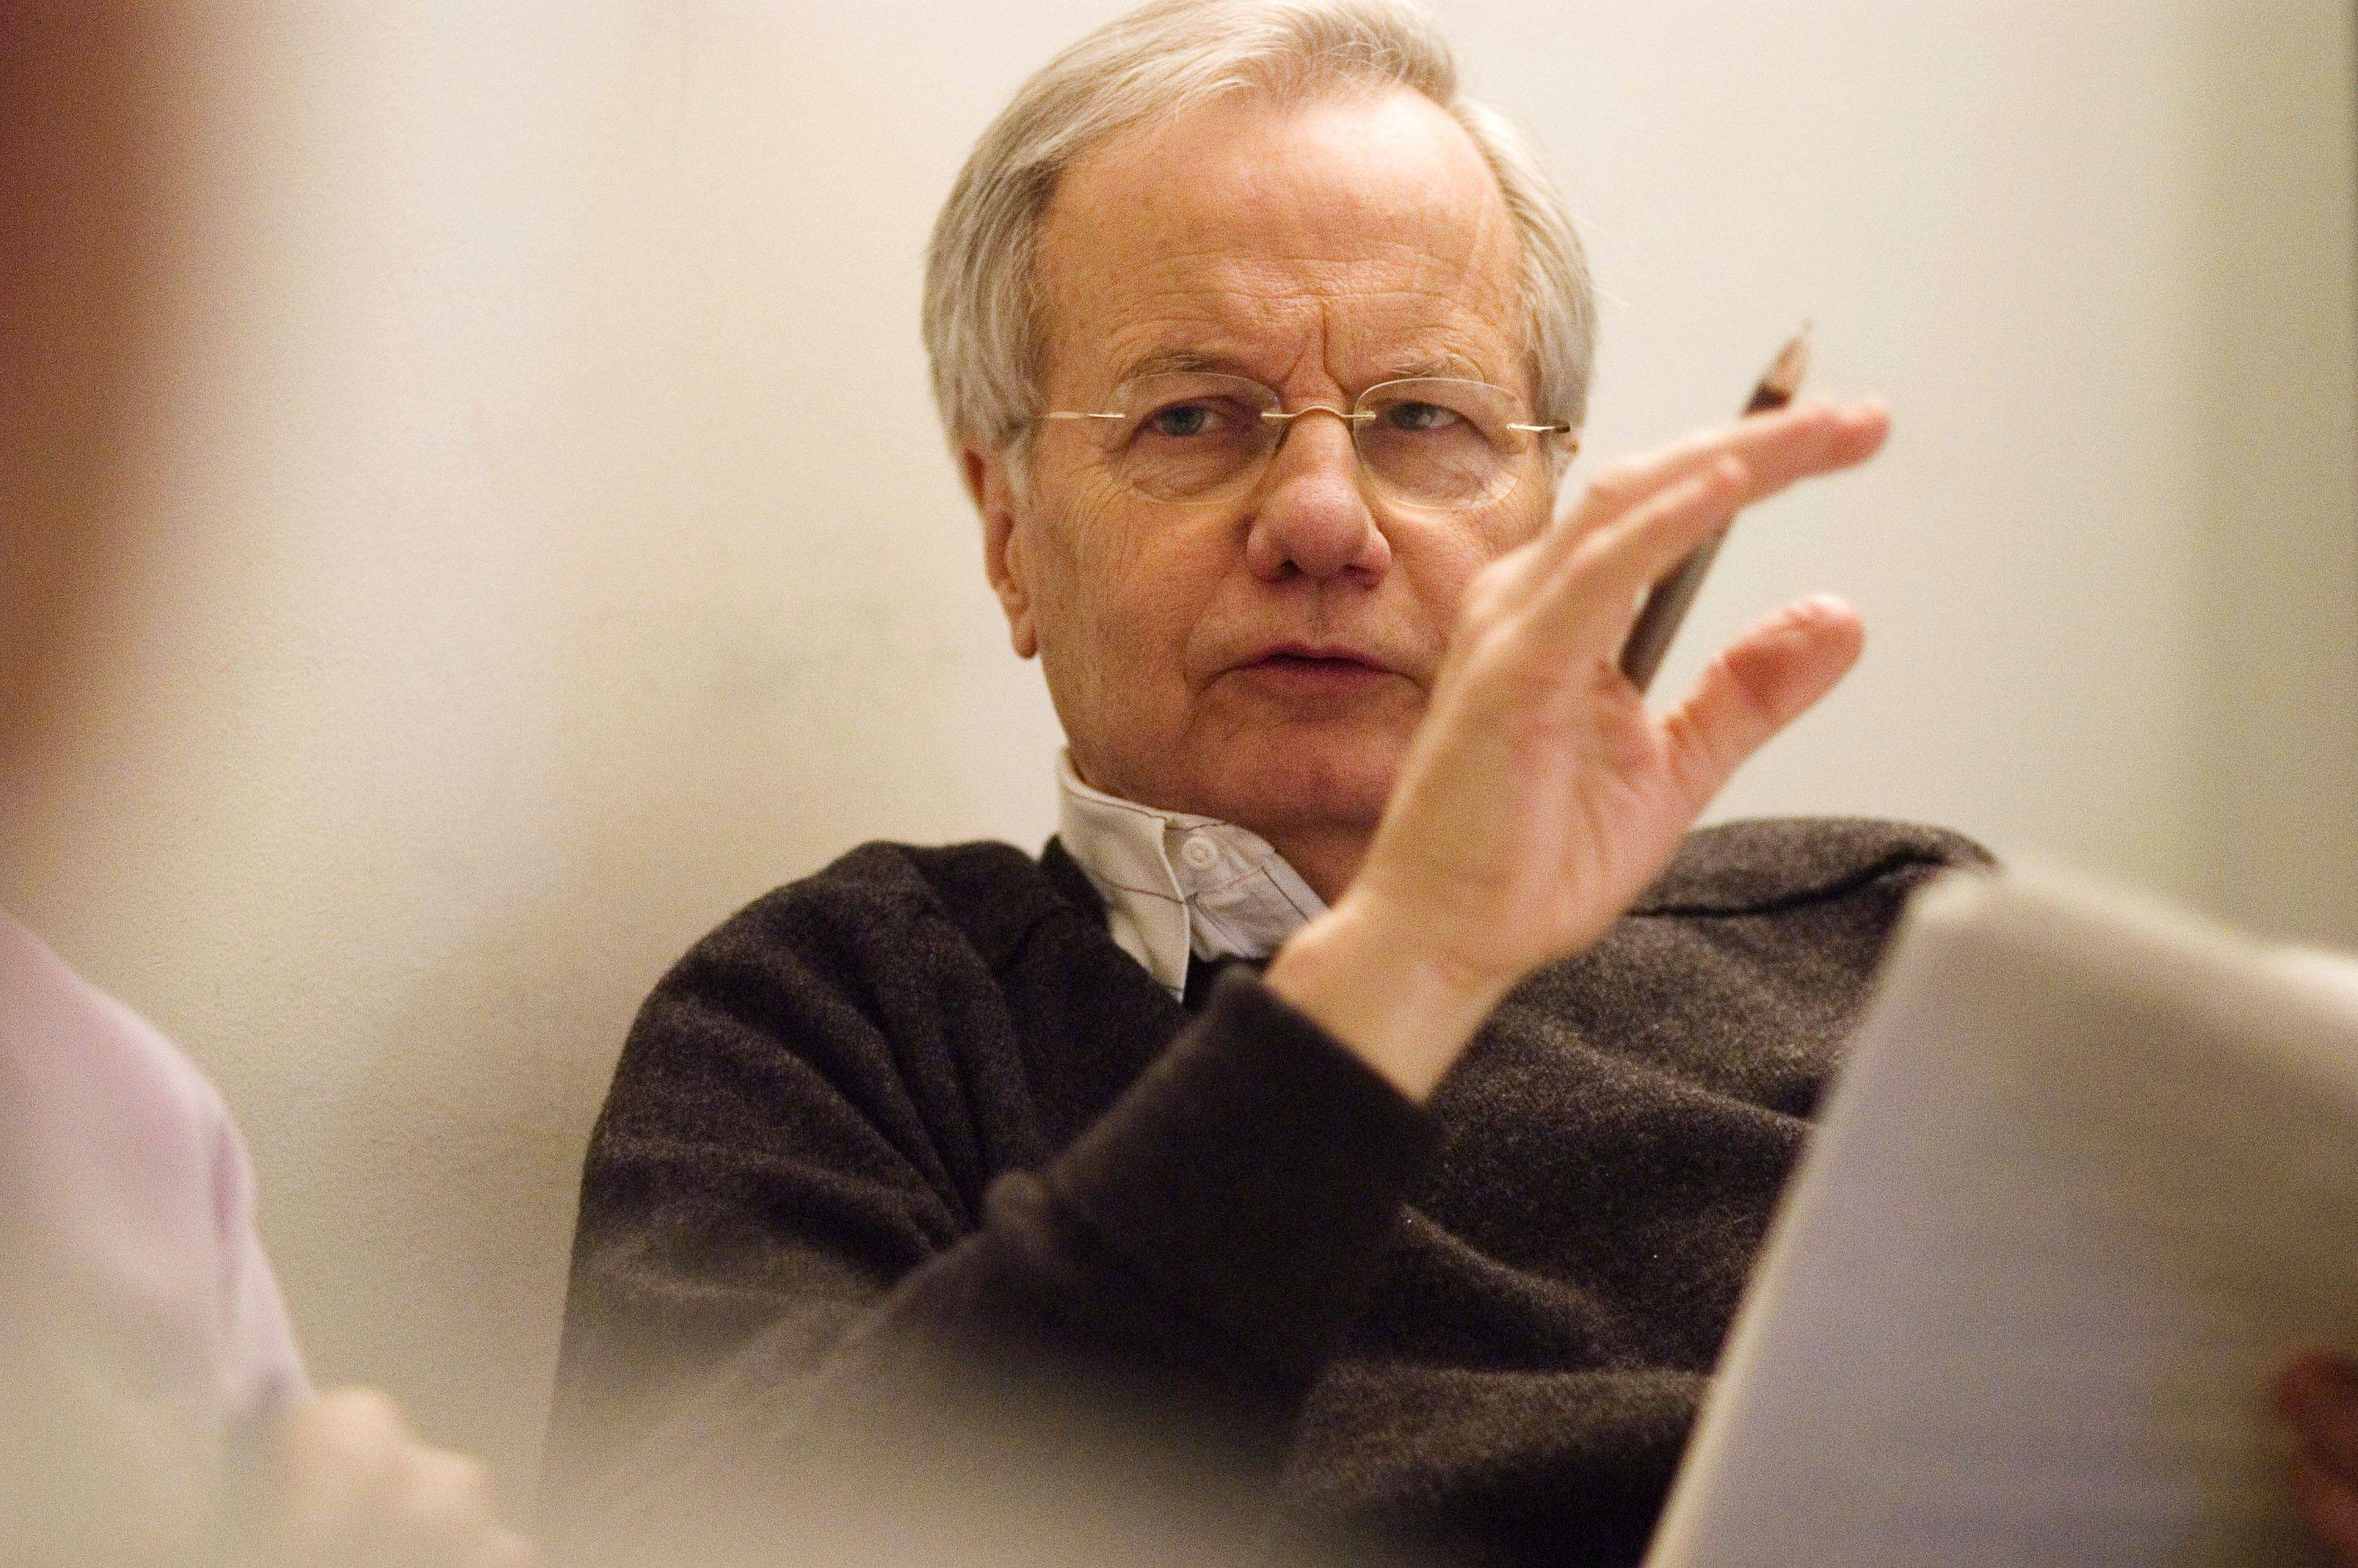 Journalist Bill Moyers says he plans to return to television with an hourlong interview show called �Moyers & Company.�